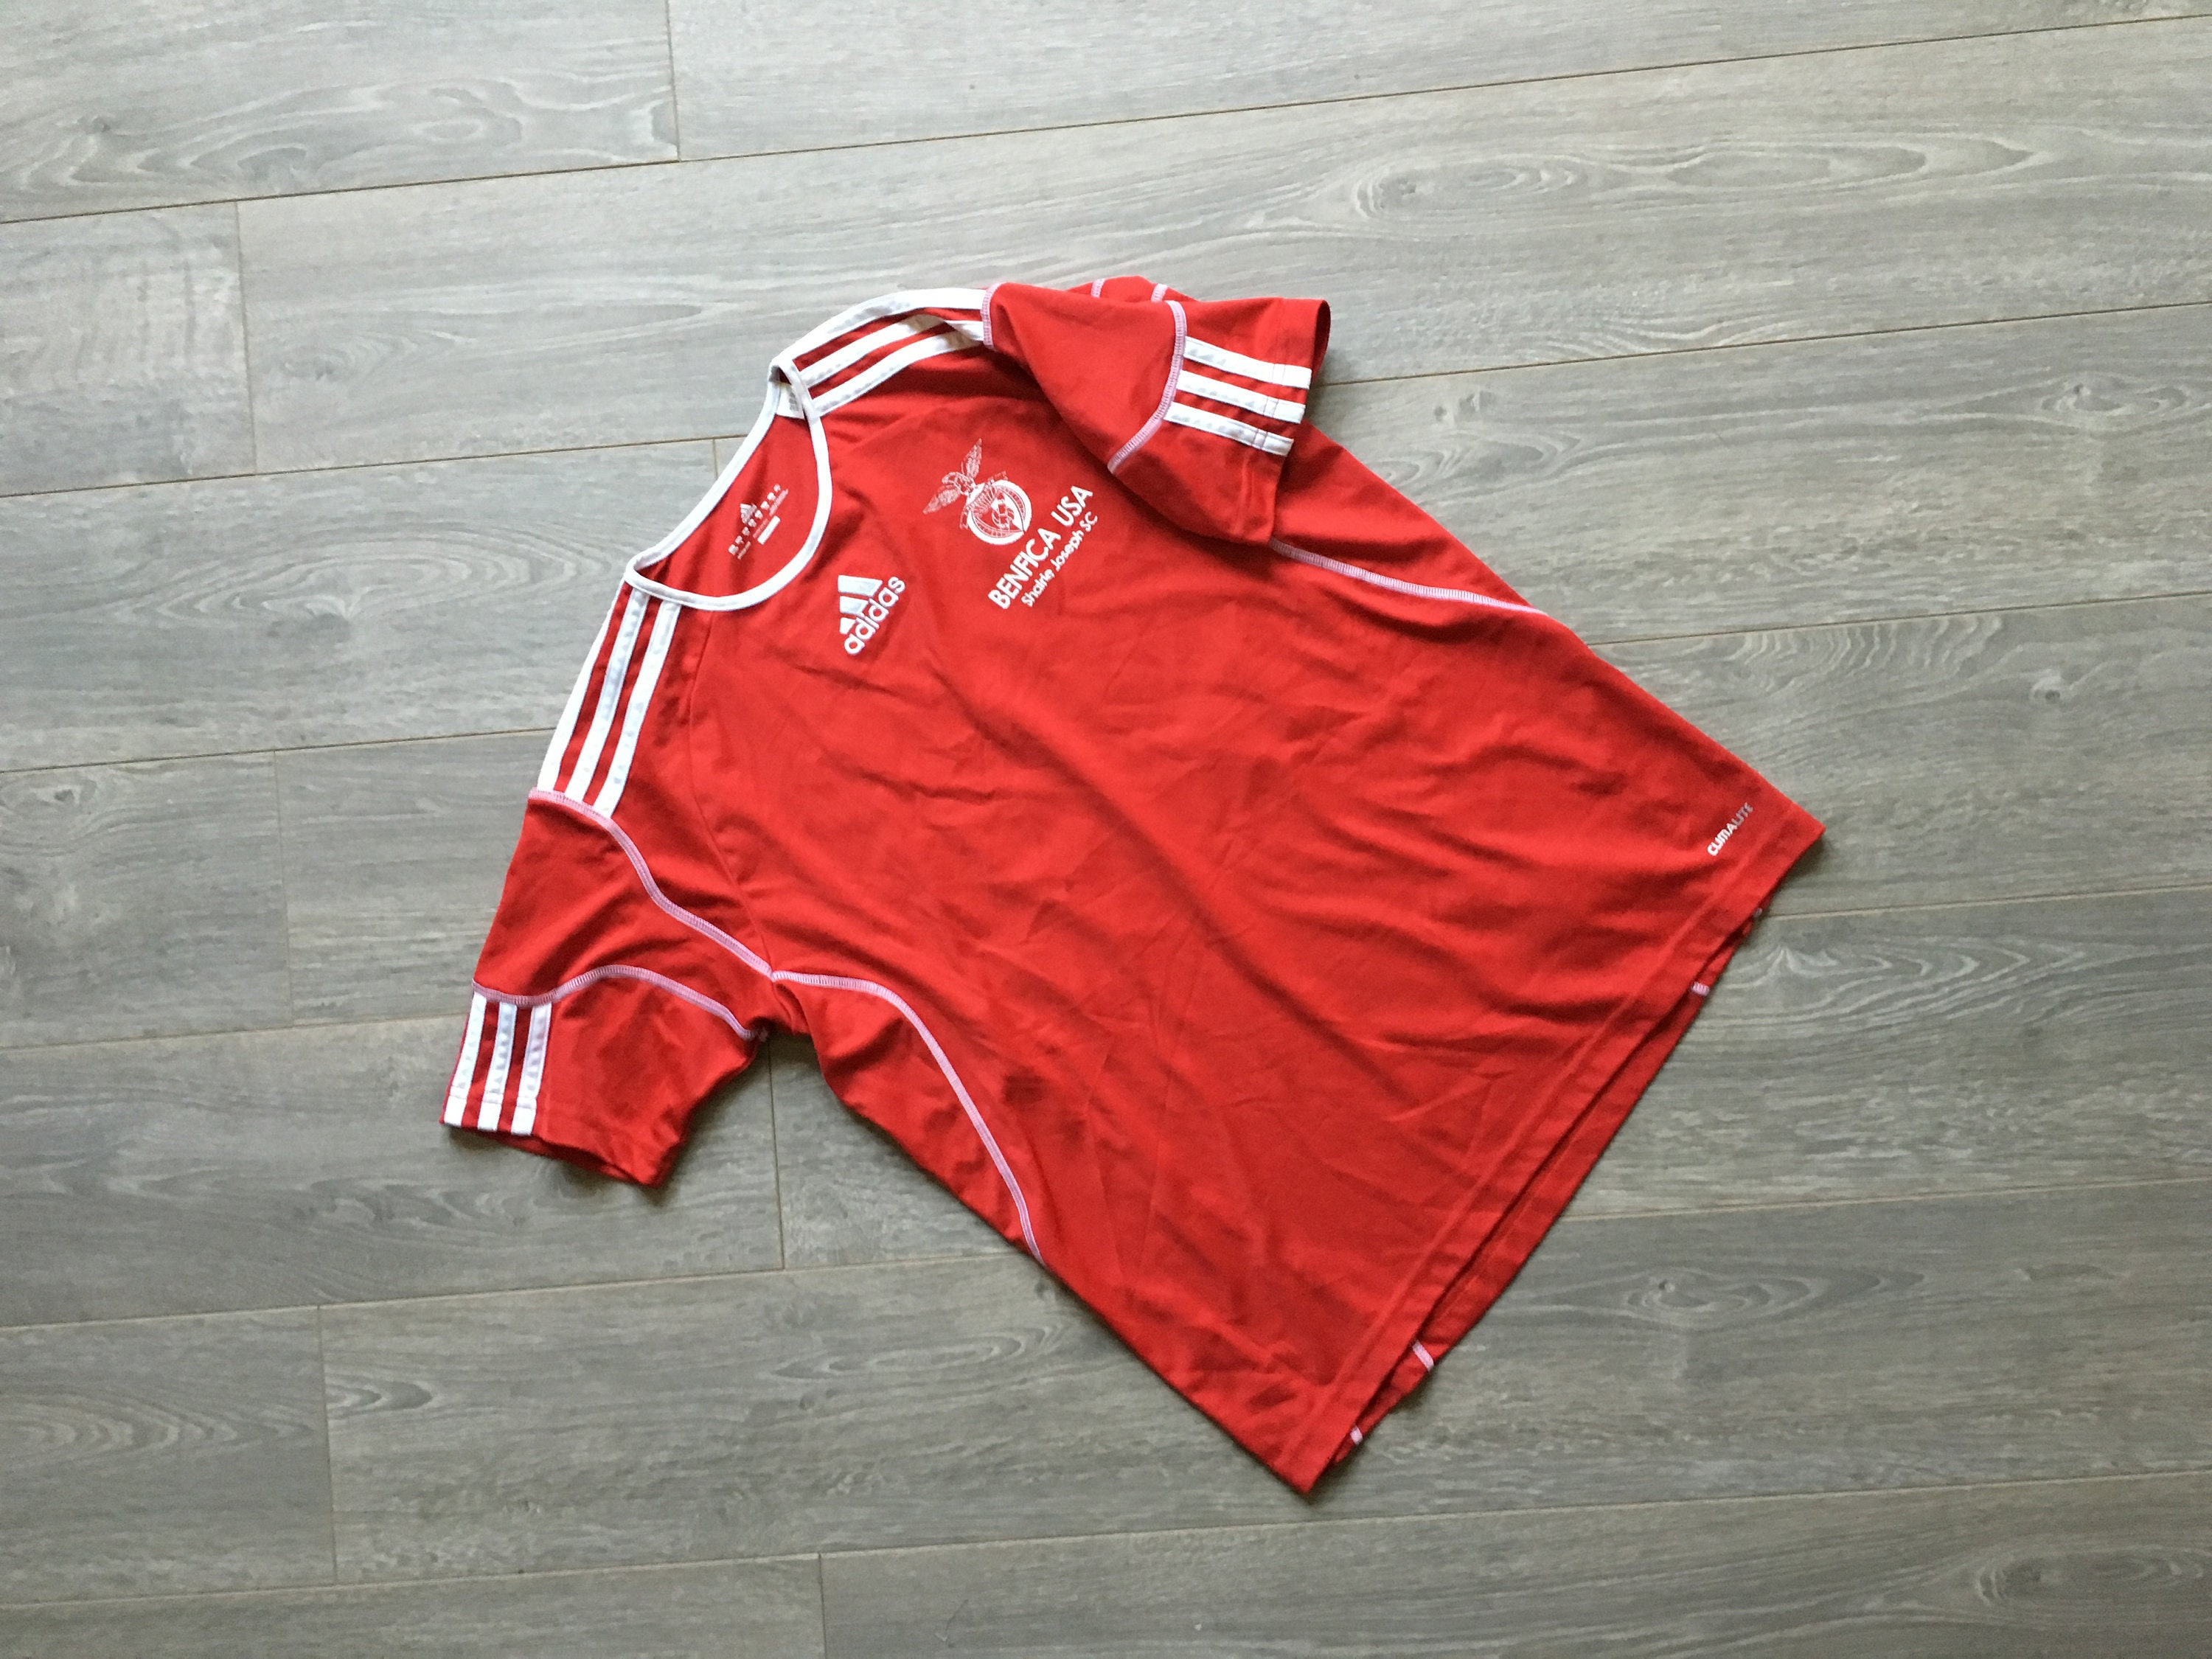 e8f25253a Vintage soccer jersey youth L red adidas shirt youth vintage